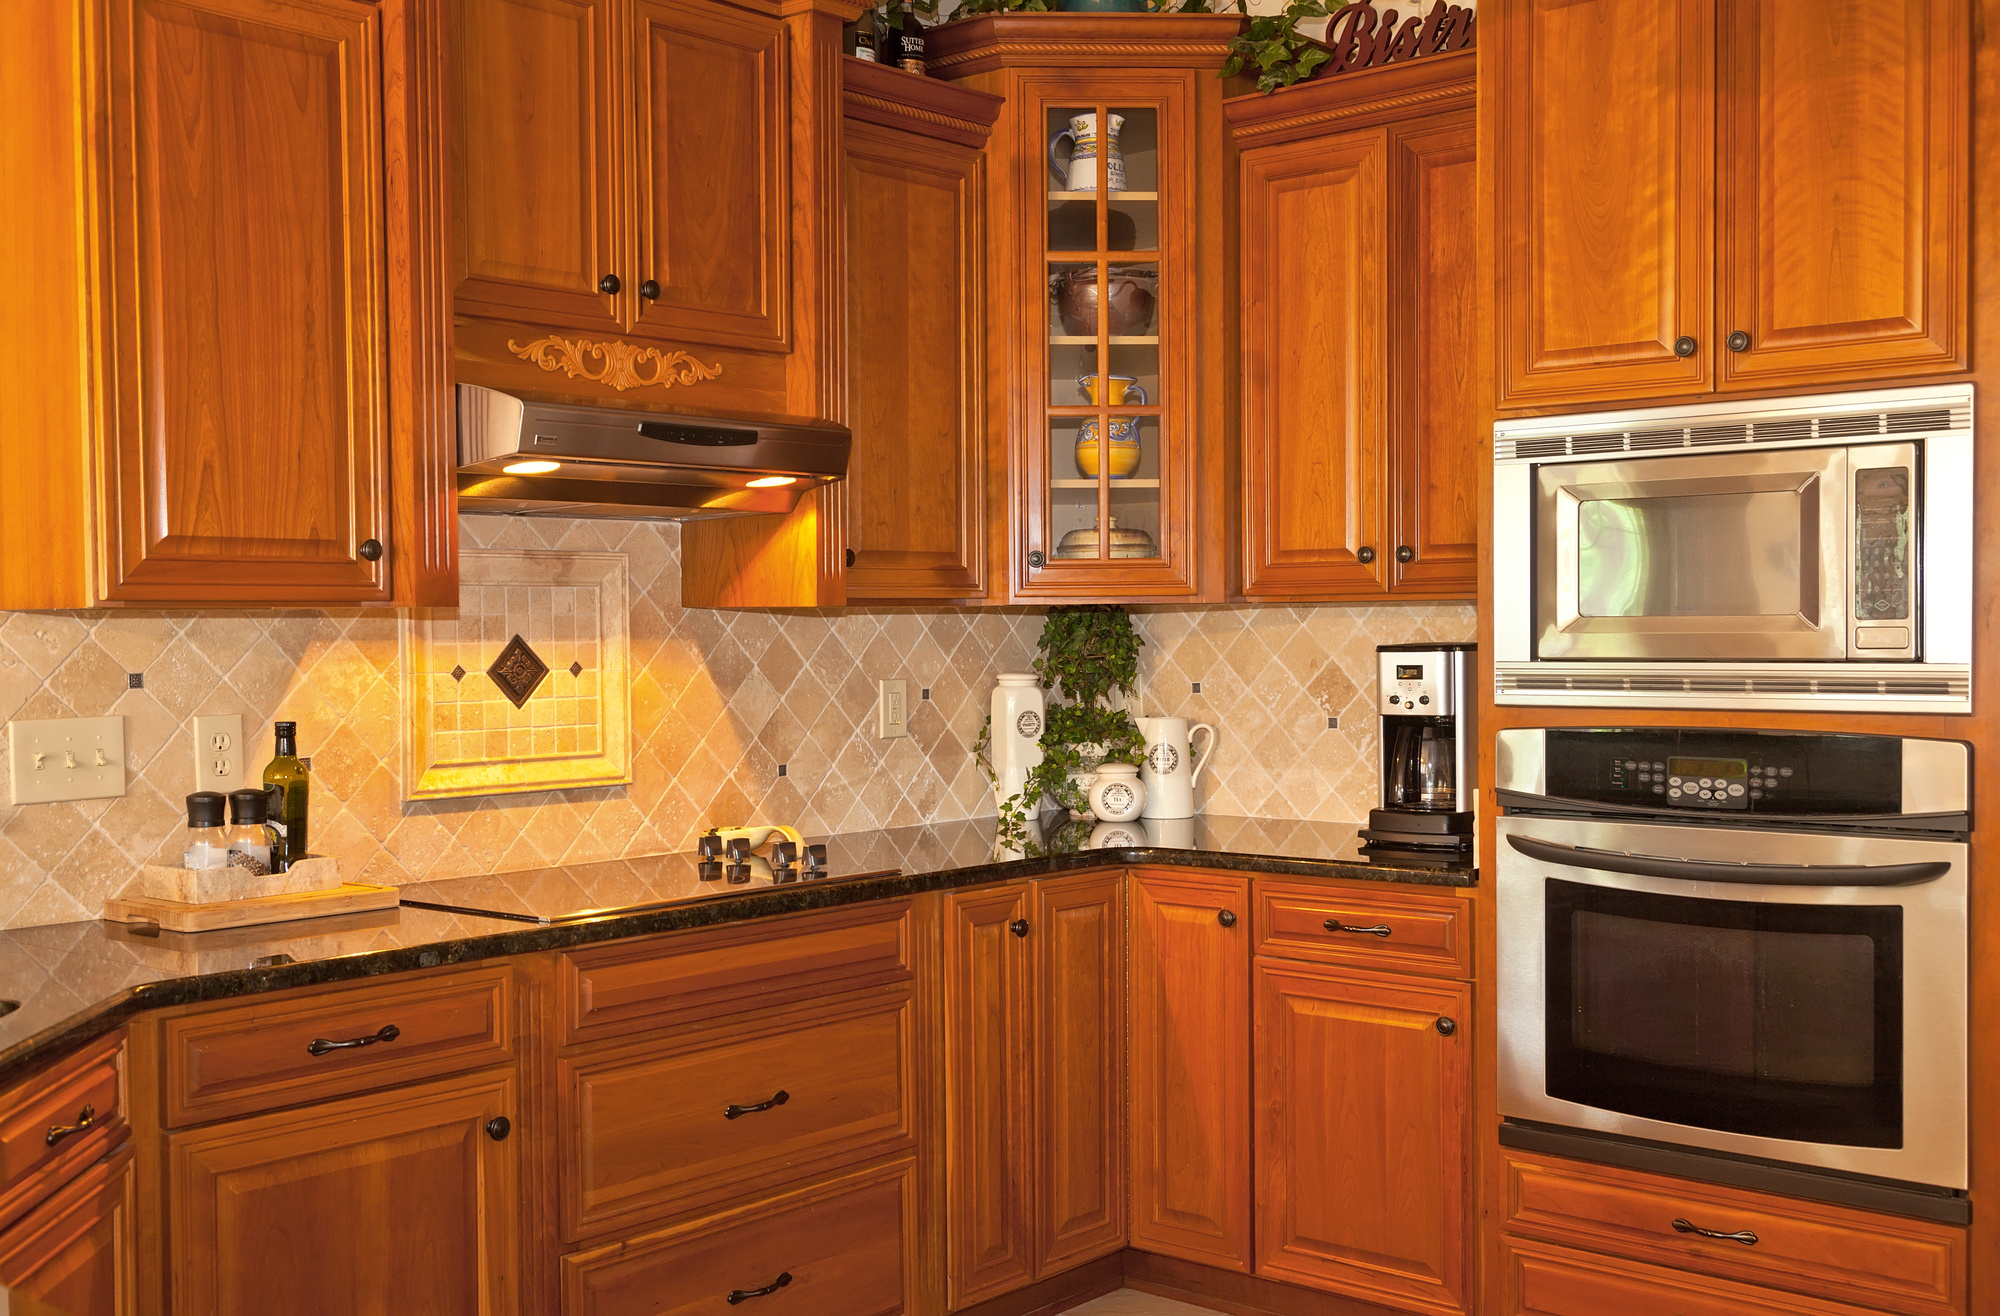 Kitchen Cabinet Dimensions Your Guide To The Standard Sizes